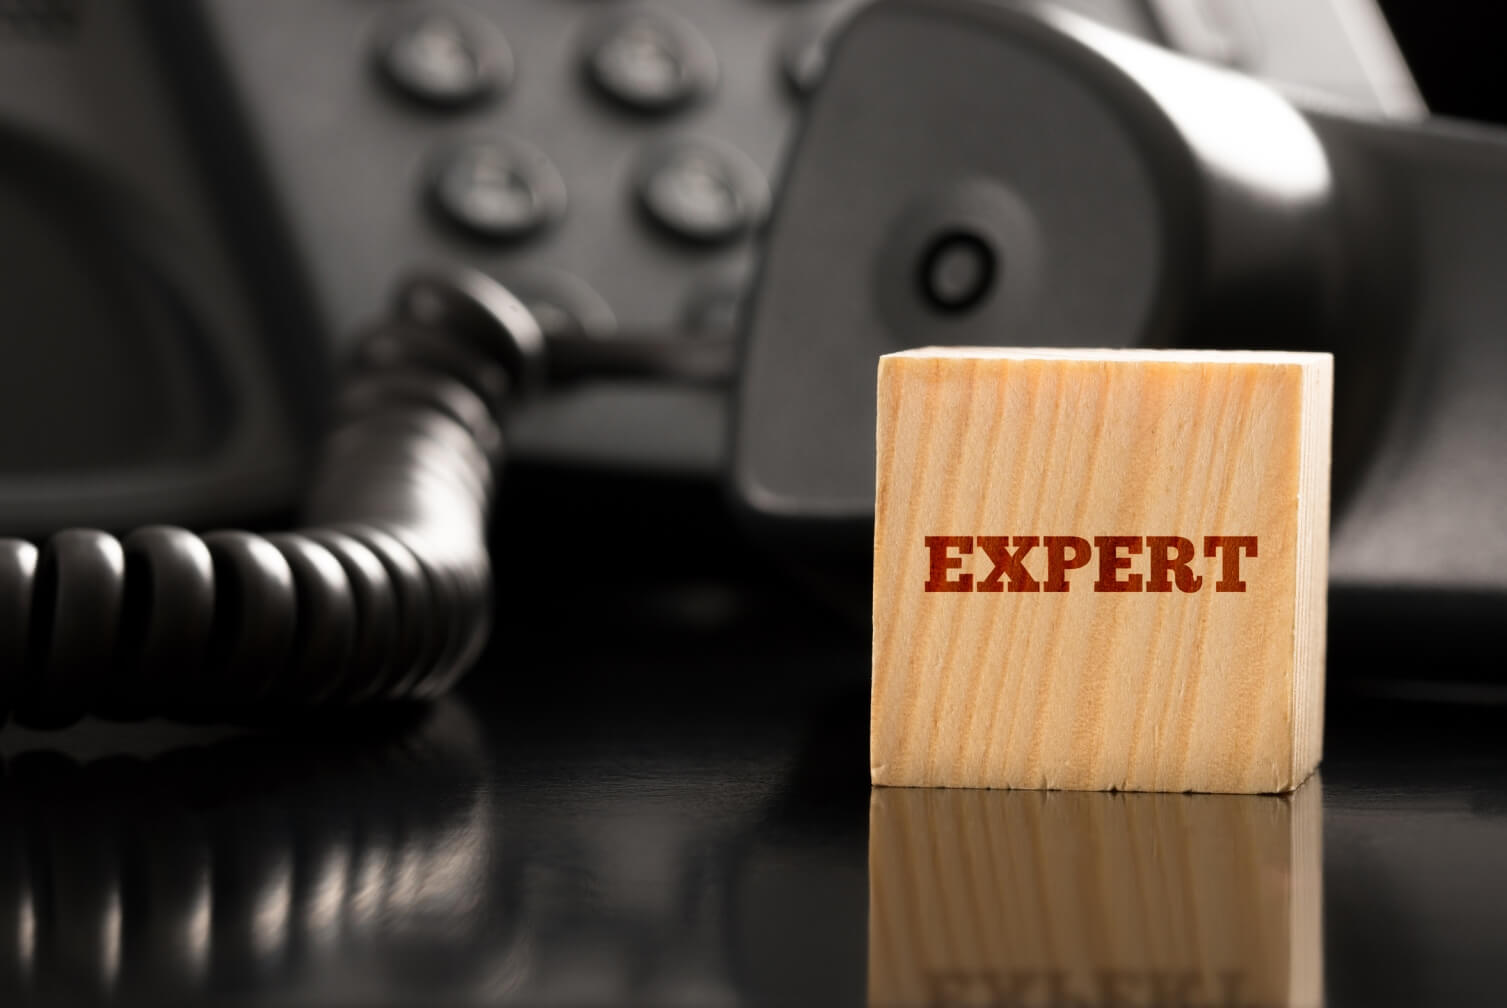 expert advice from a logistics services company